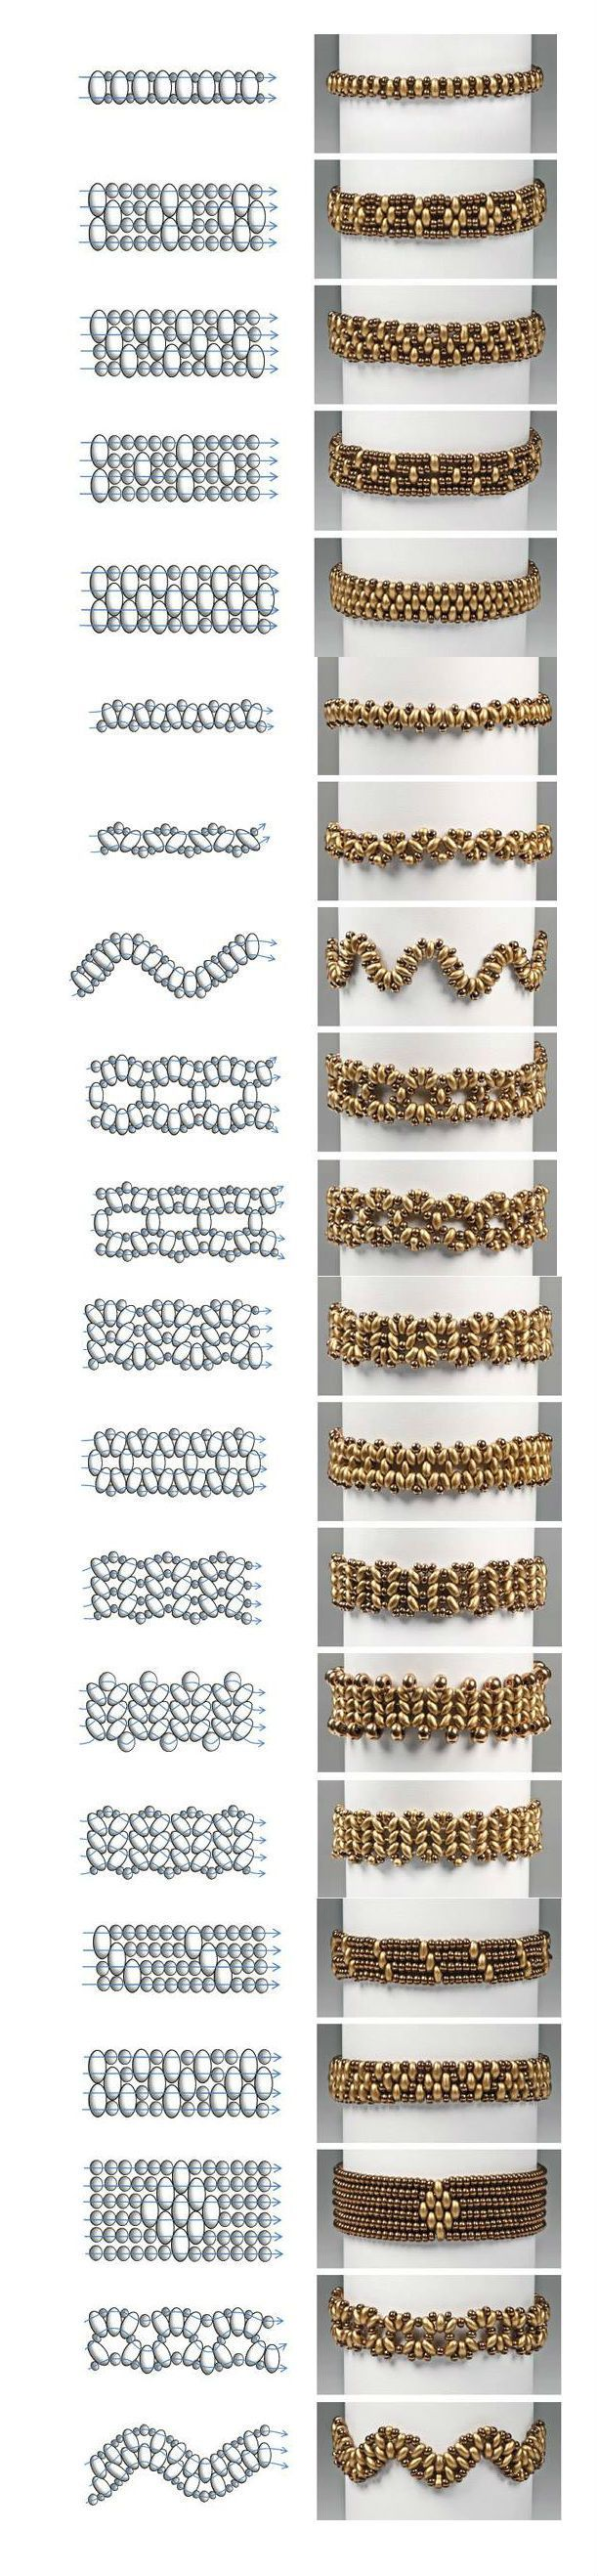 Preciosa Projects - Twin Bracelets Easy and Simple Pattern featured in Bead-Patterns.com Newsletter!: